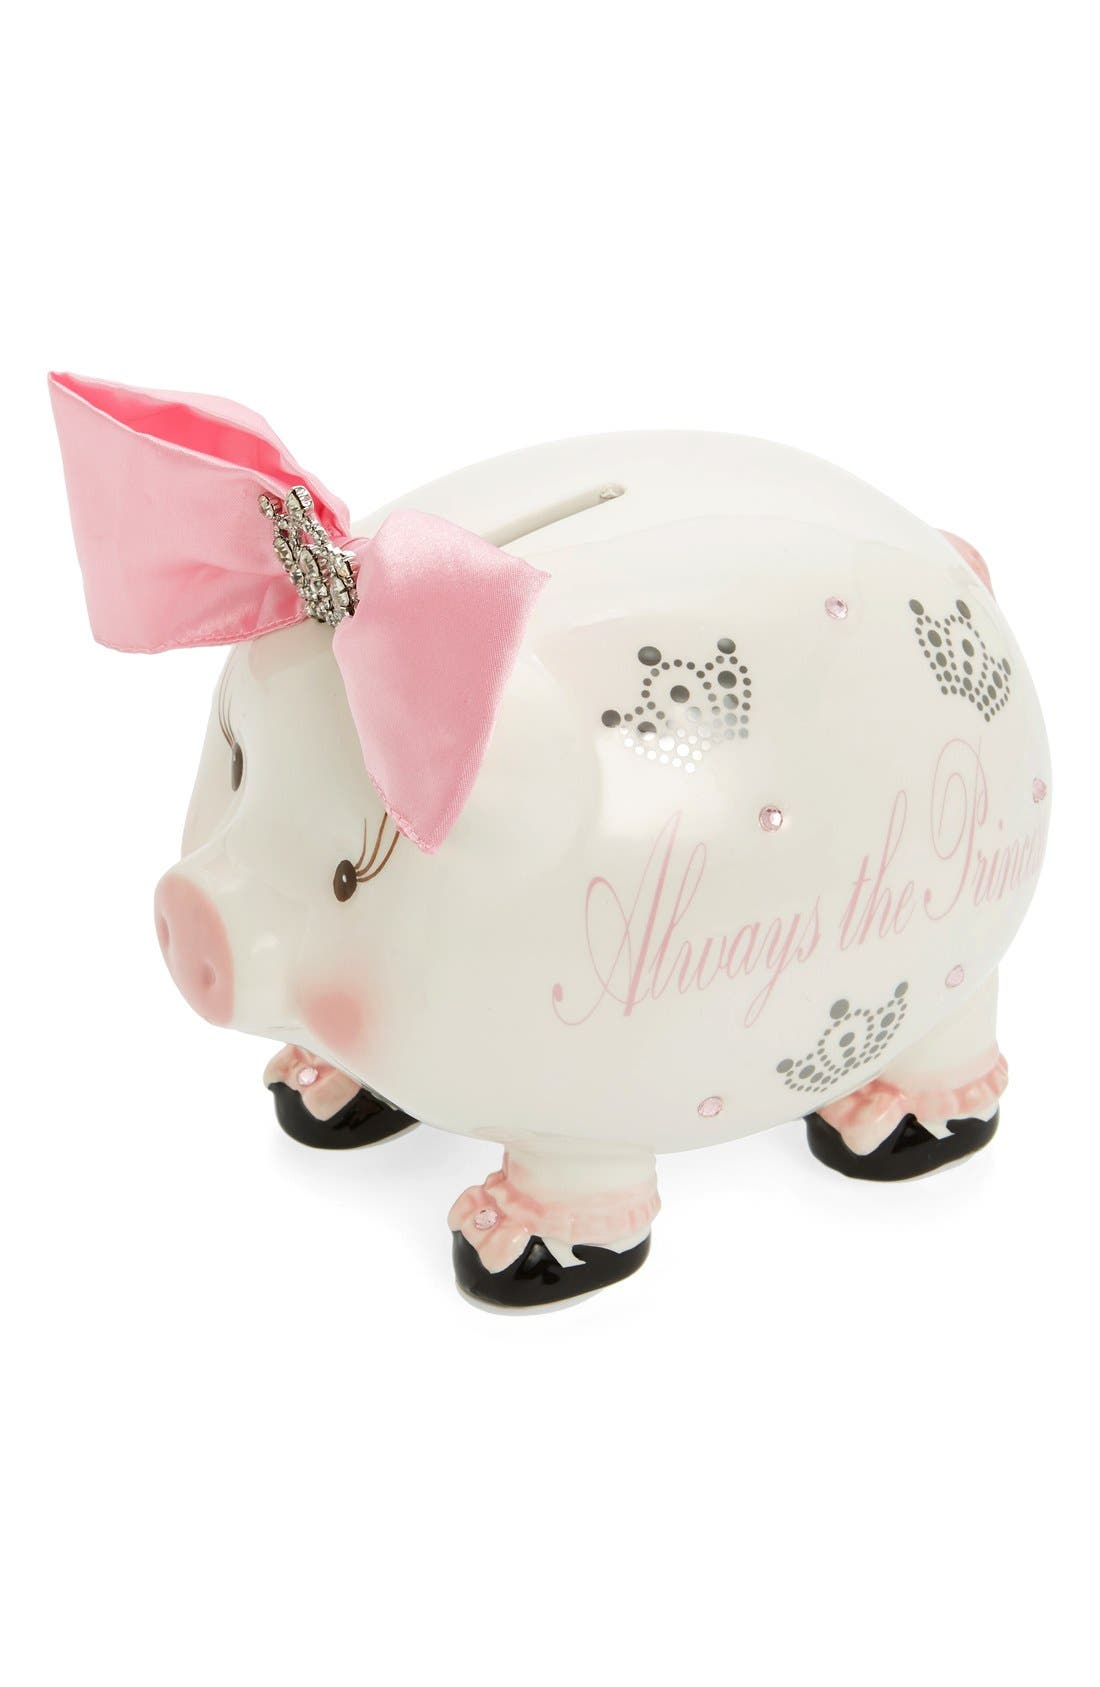 'Always the Princess' Jeweled Piggy Bank,                         Main,                         color, PINK/ IVORY